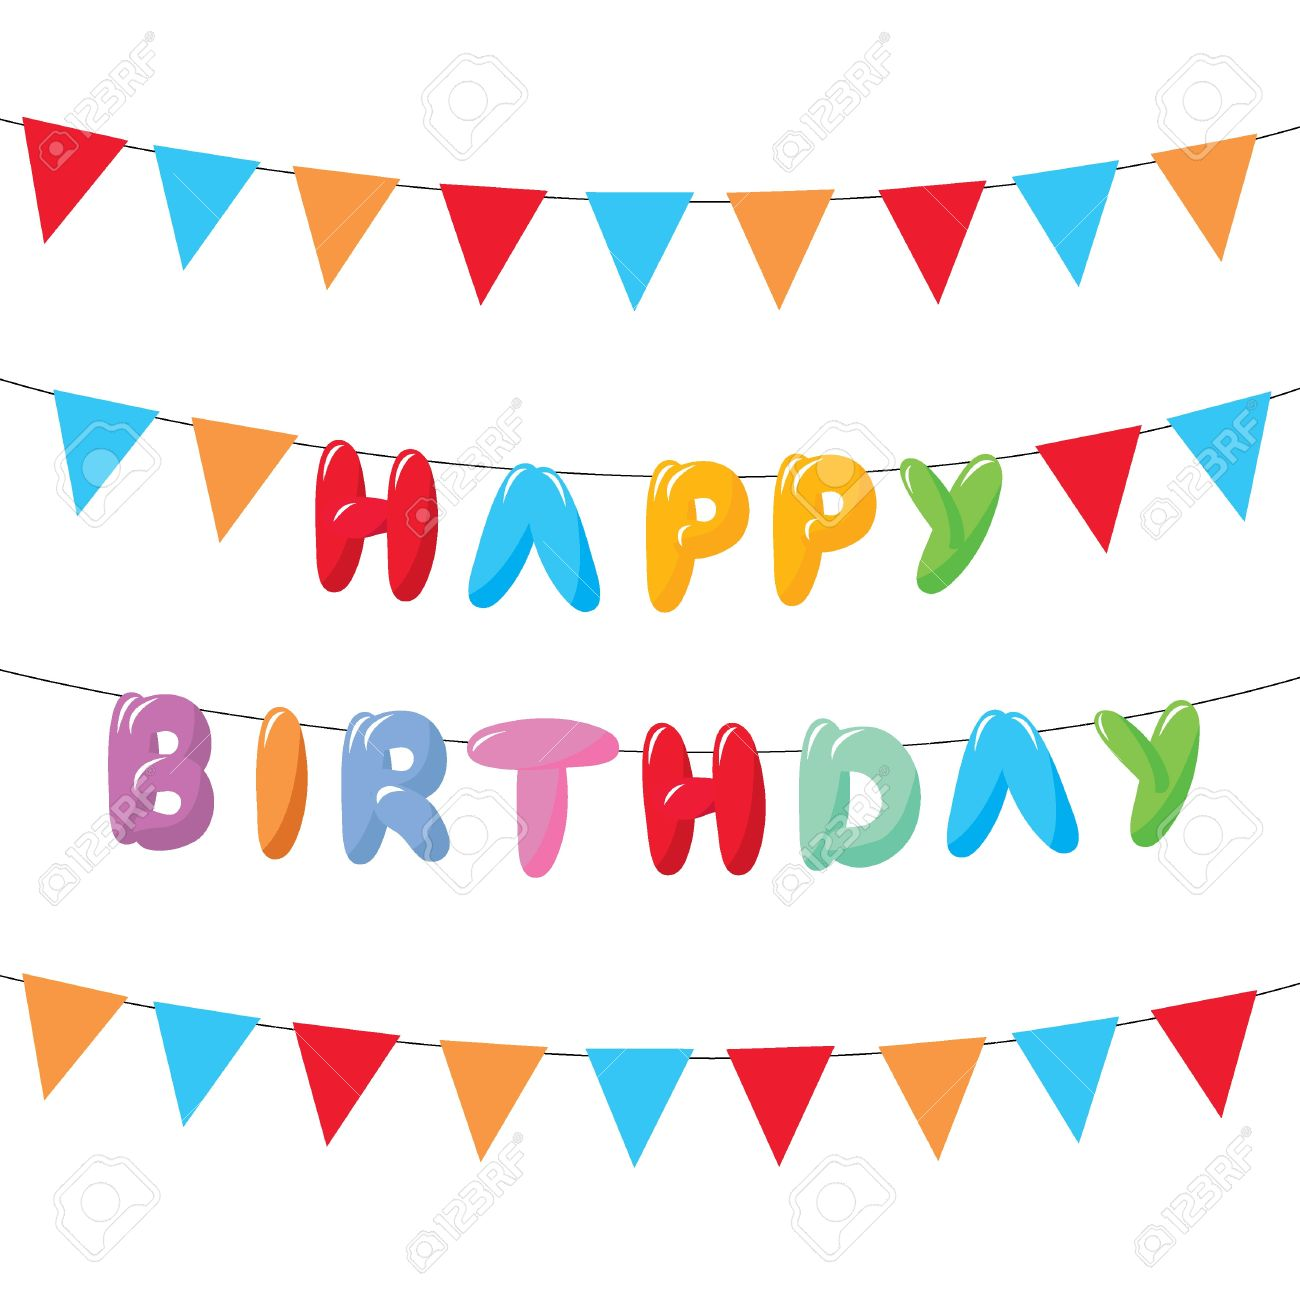 happy birthday hanging sign ; 17717236-happy-birthday-with-hanging-flags-for-cards-banners-and-others